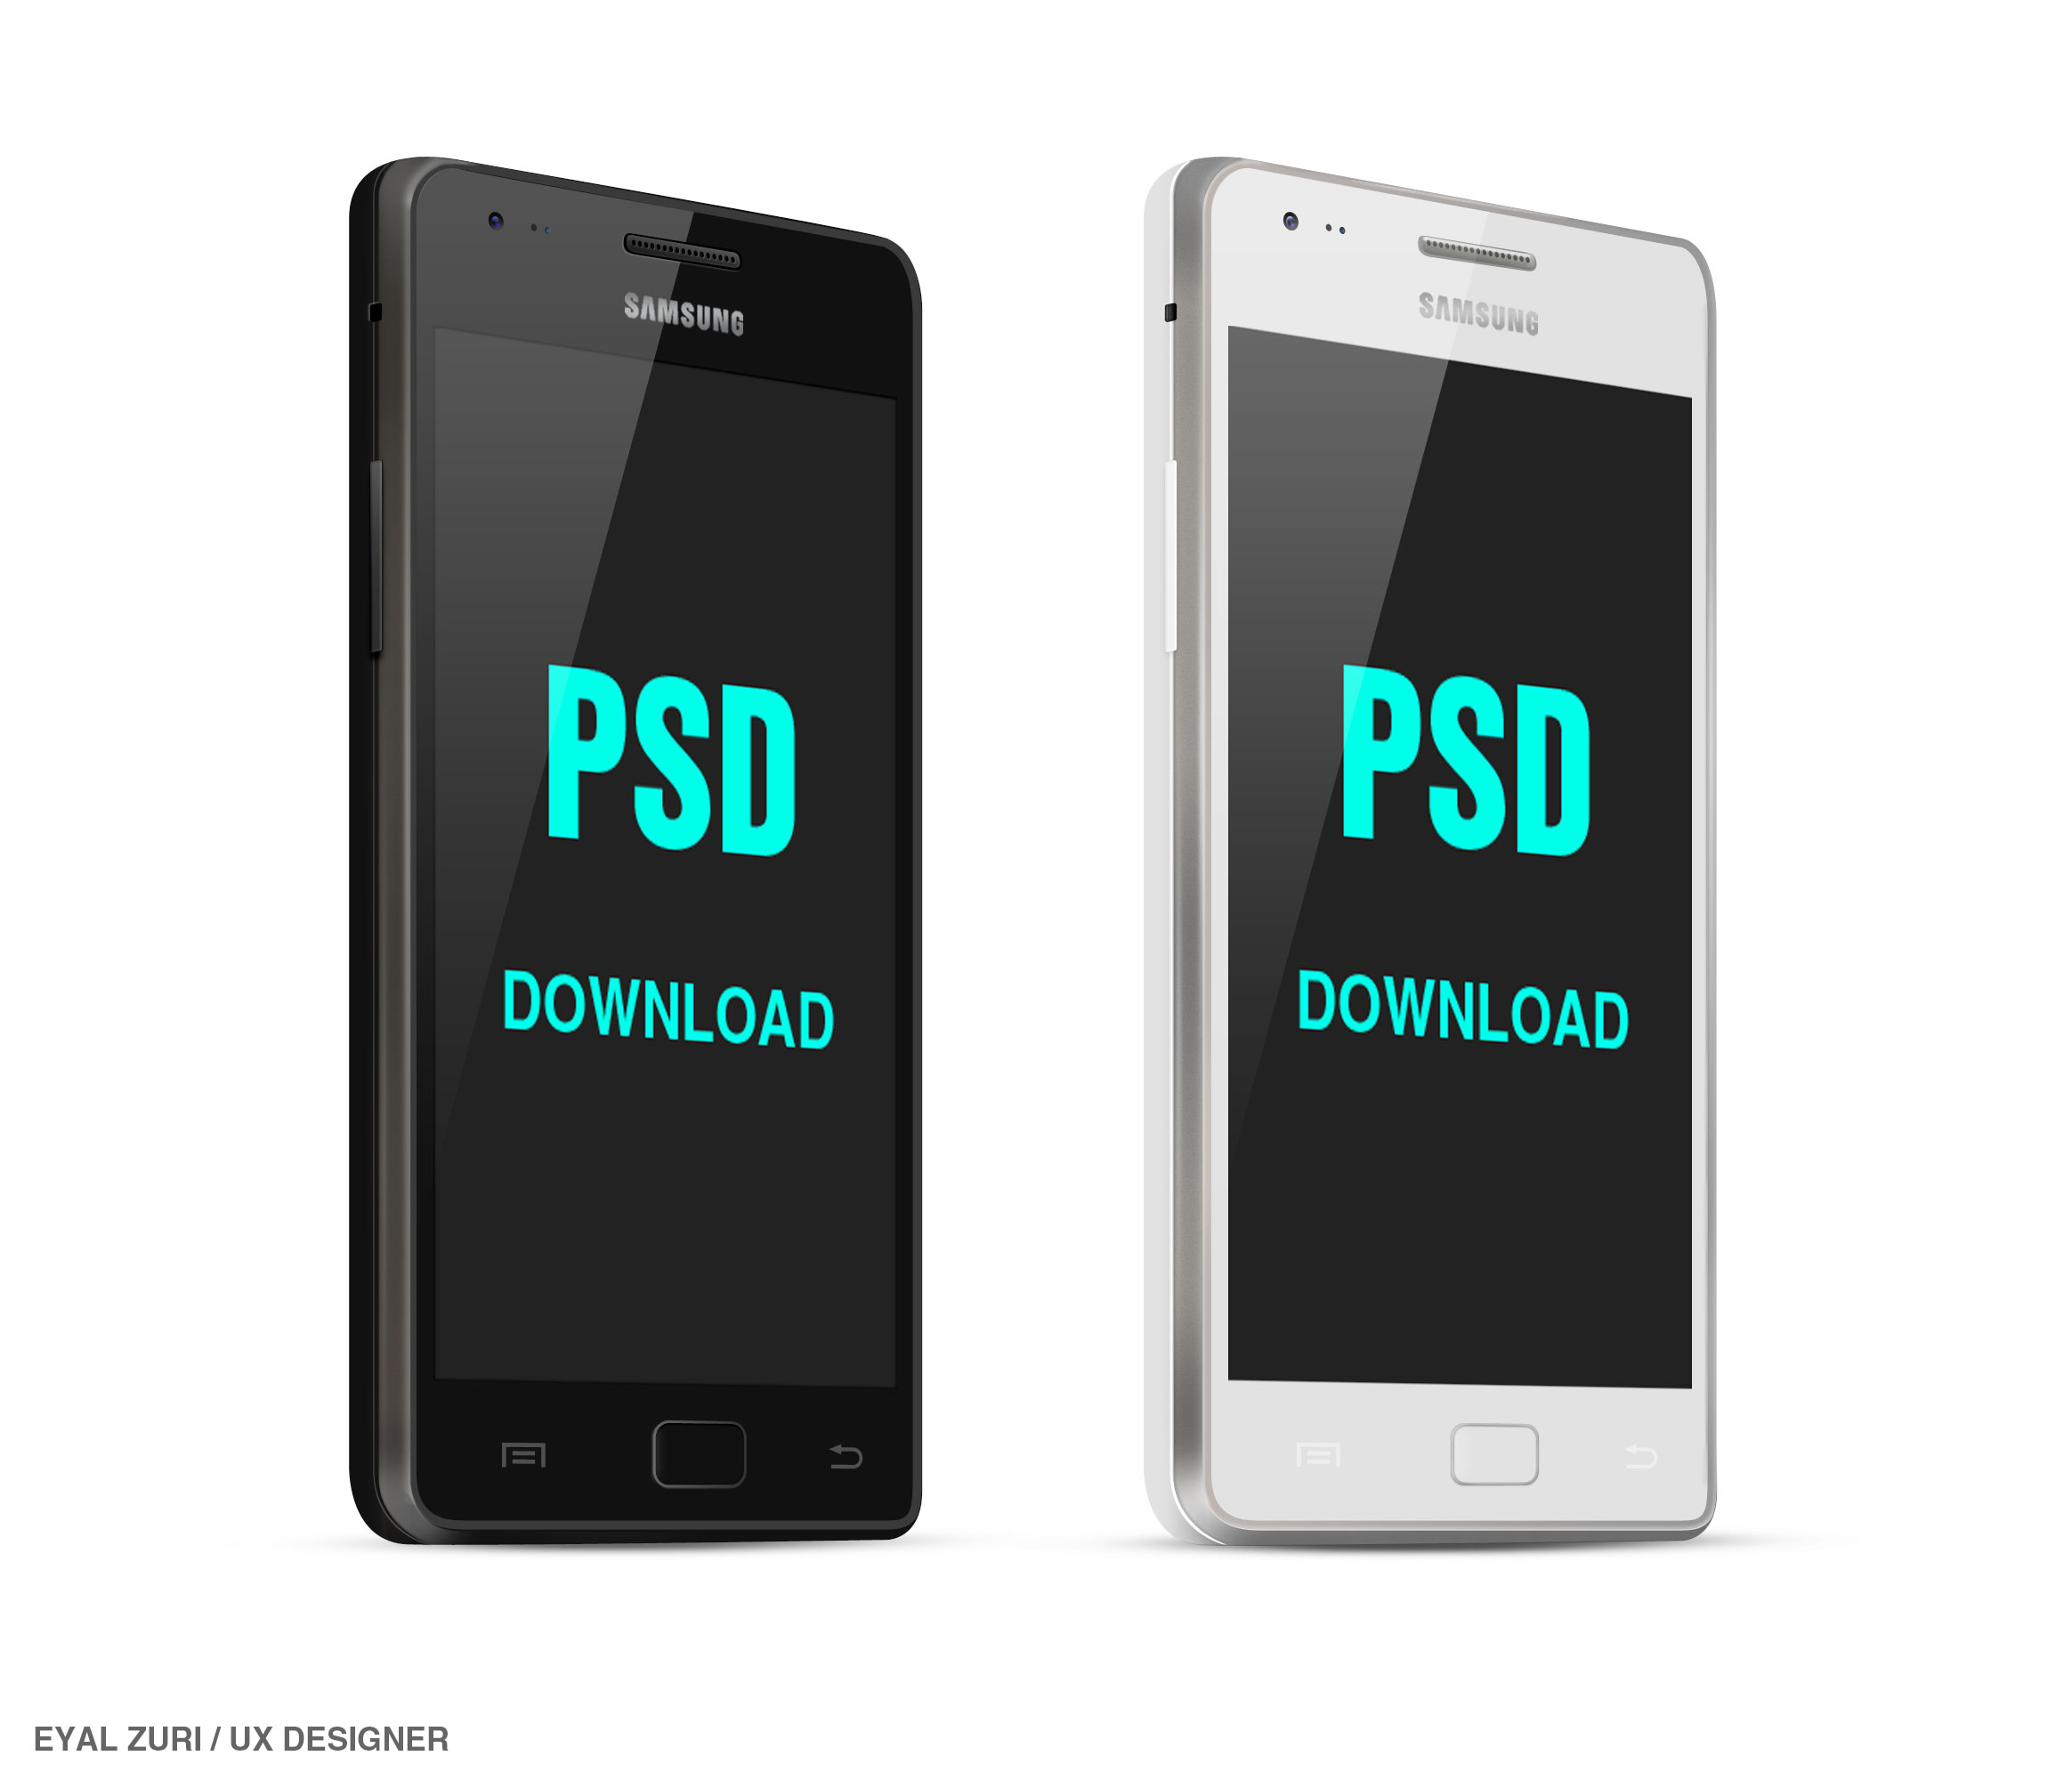 android galaxy smartphone psd mockup - Mockups For Android